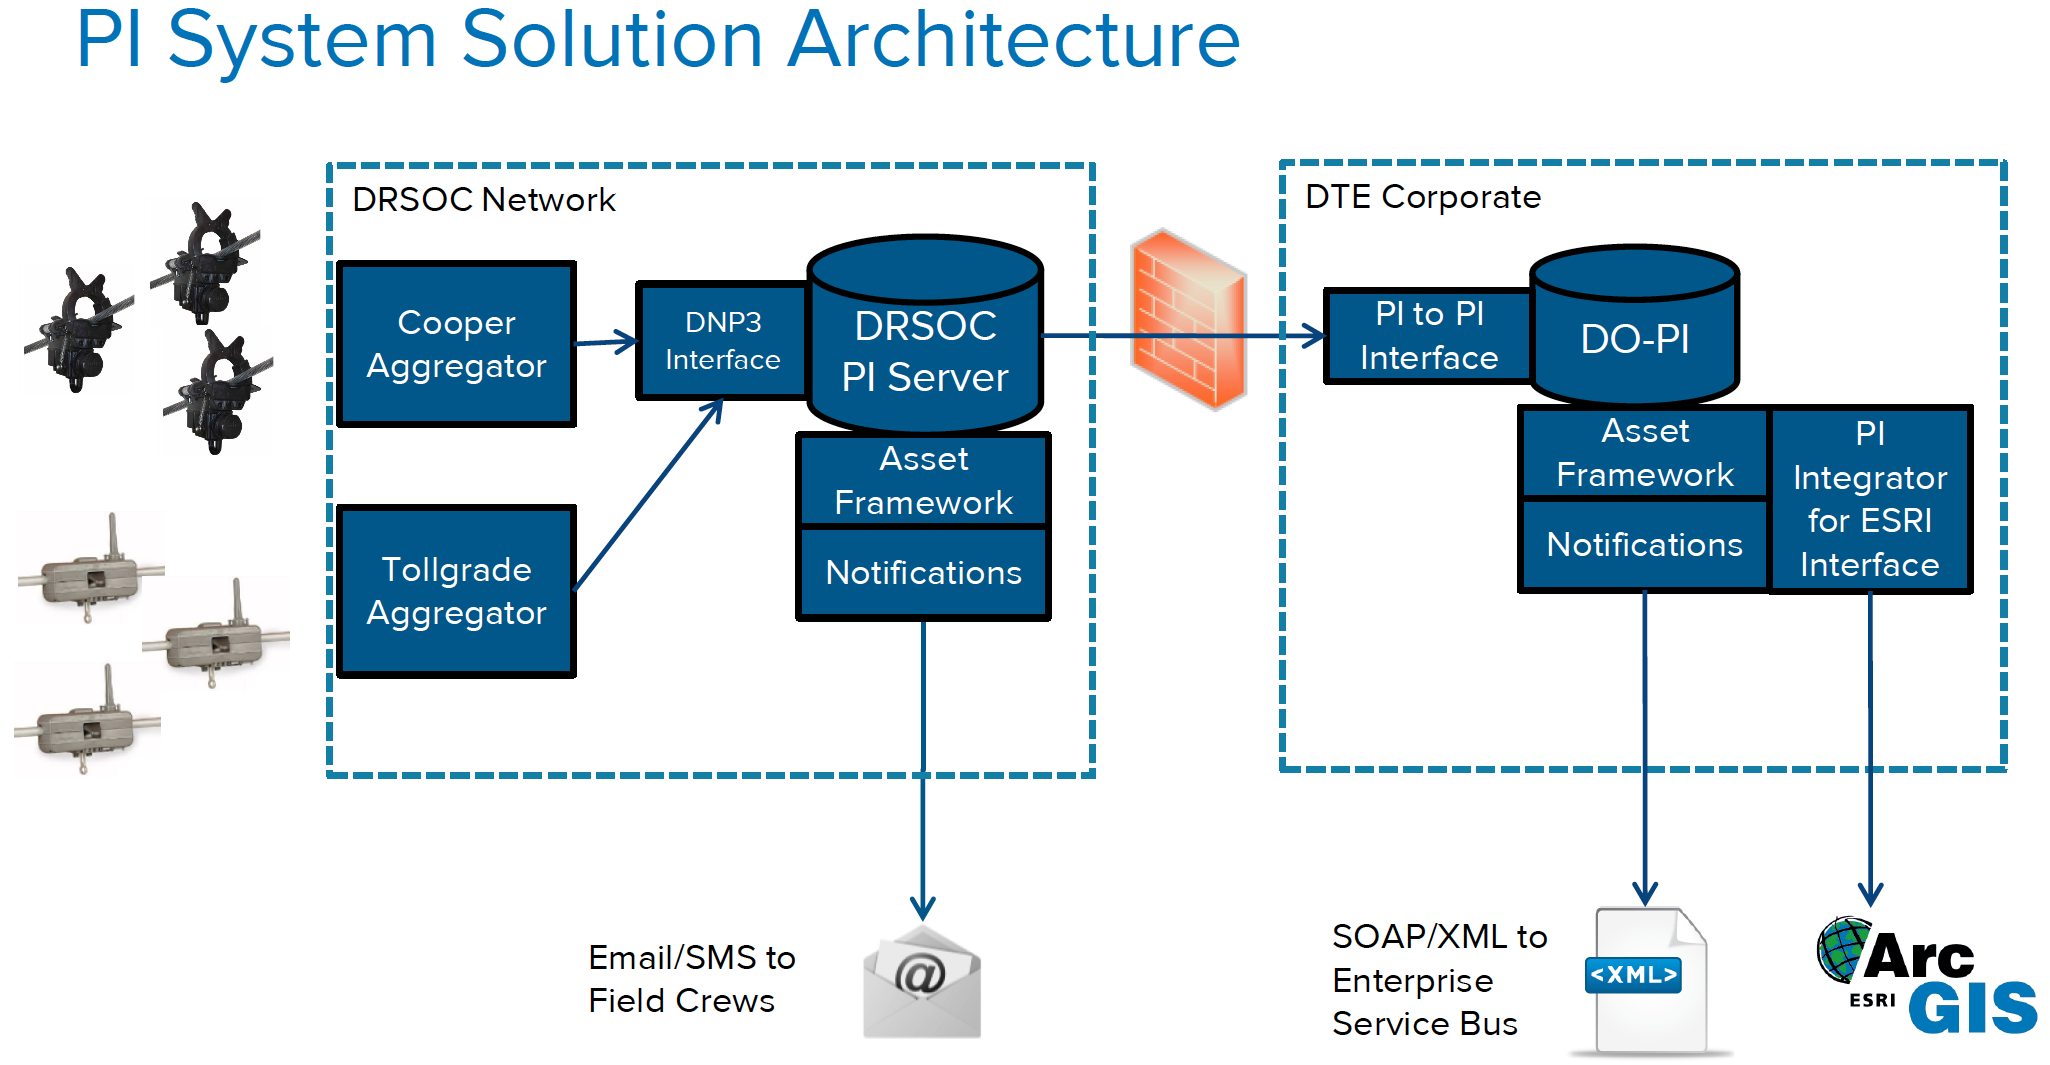 DTE PI System Solution Architecture Diagram